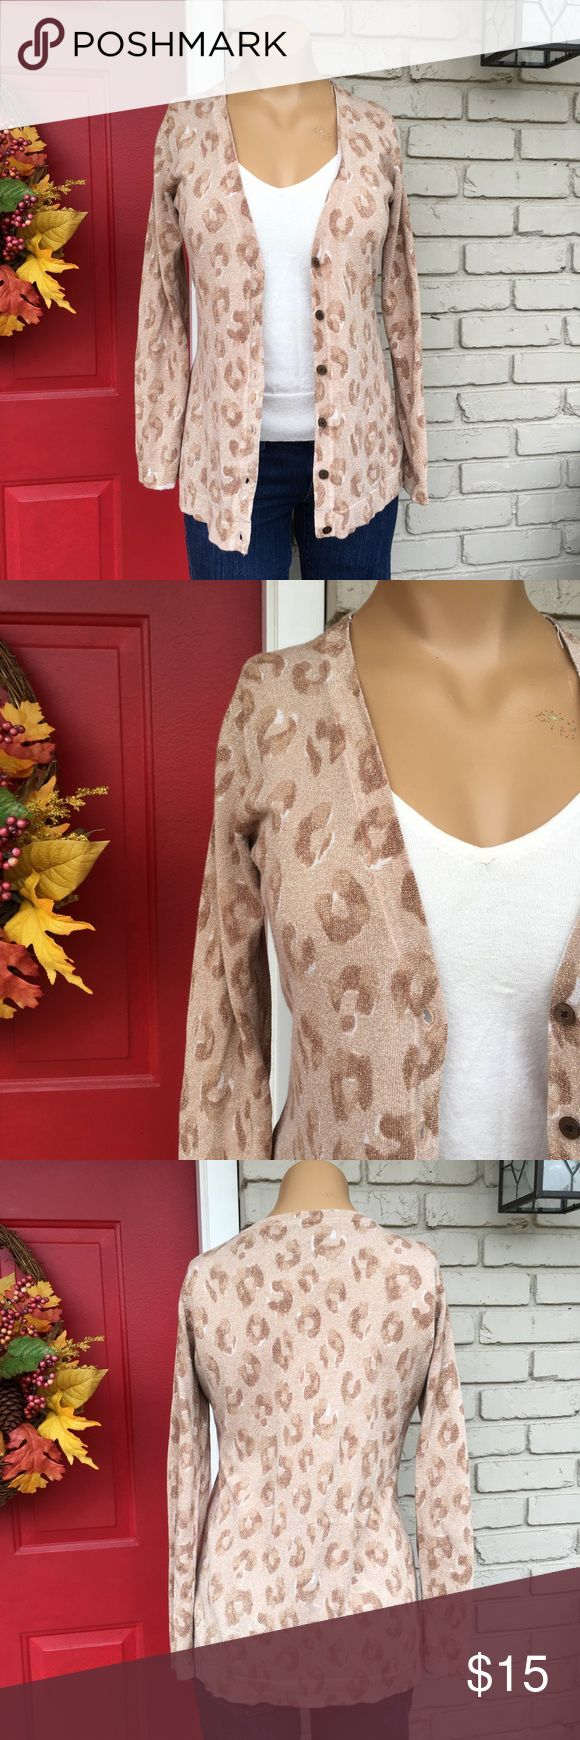 Best 25  Cheetah cardigan ideas on Pinterest | Animal print night ...